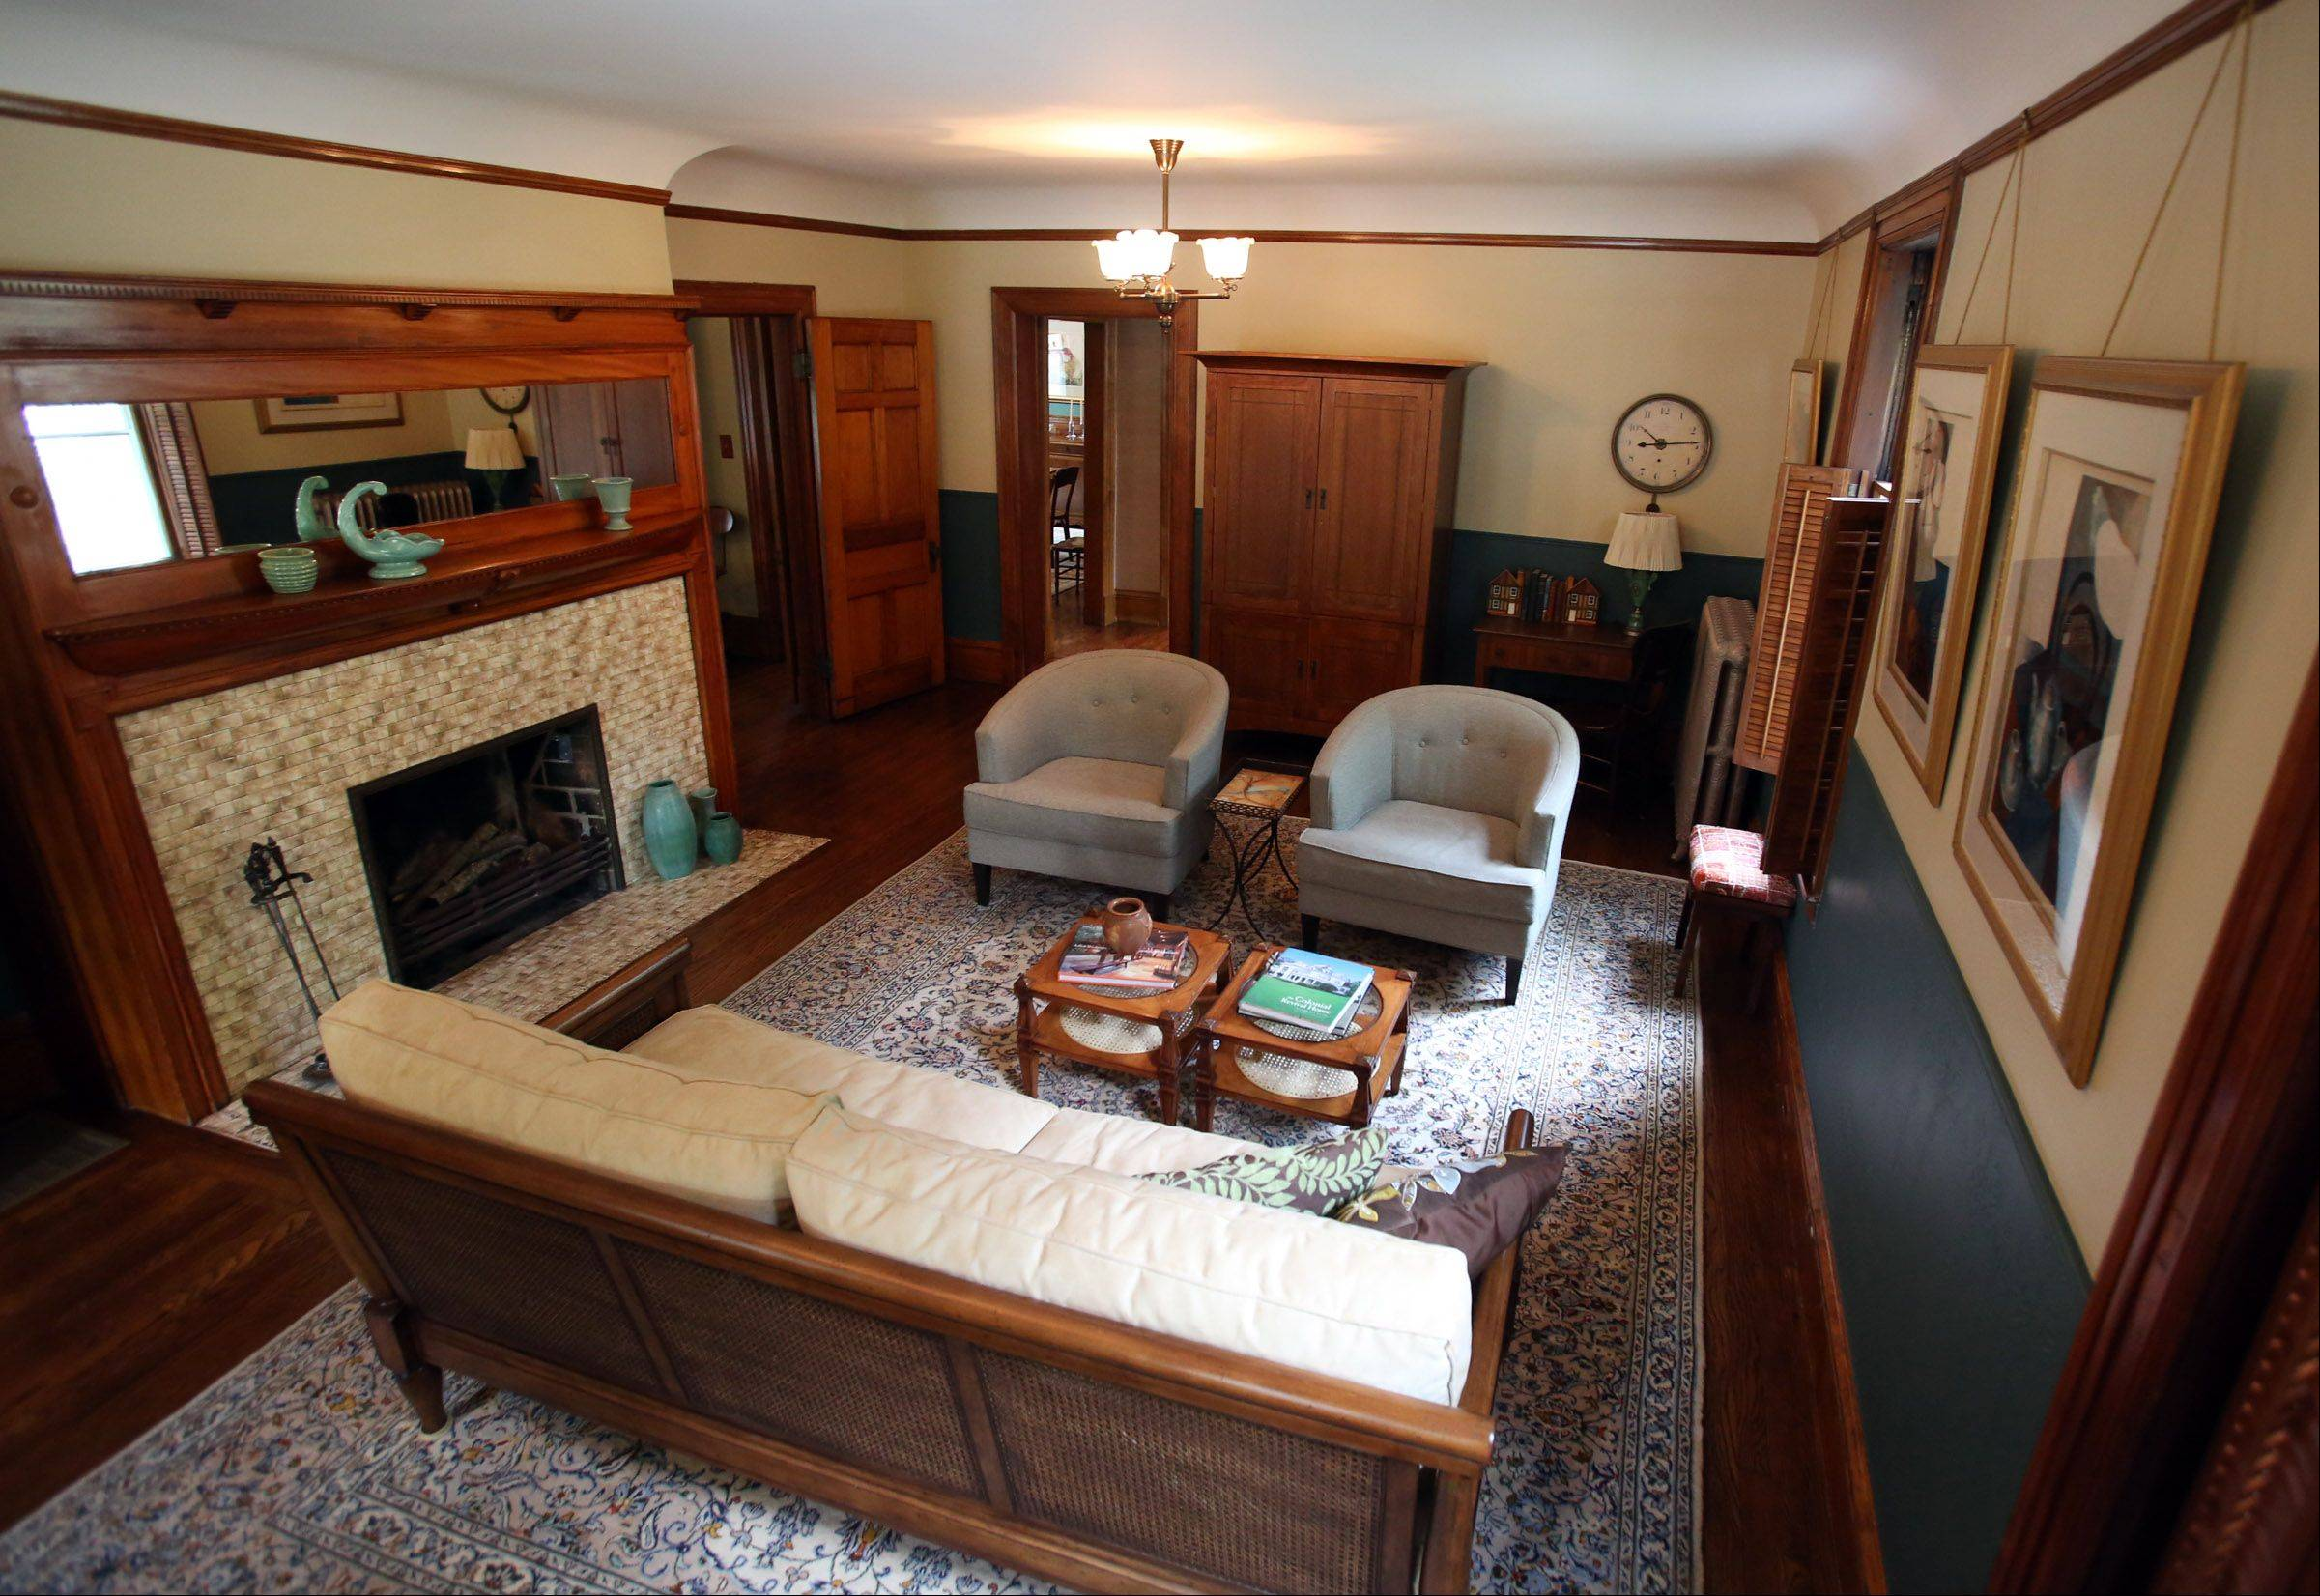 The Thompsons' living room was two rooms in the distant past.